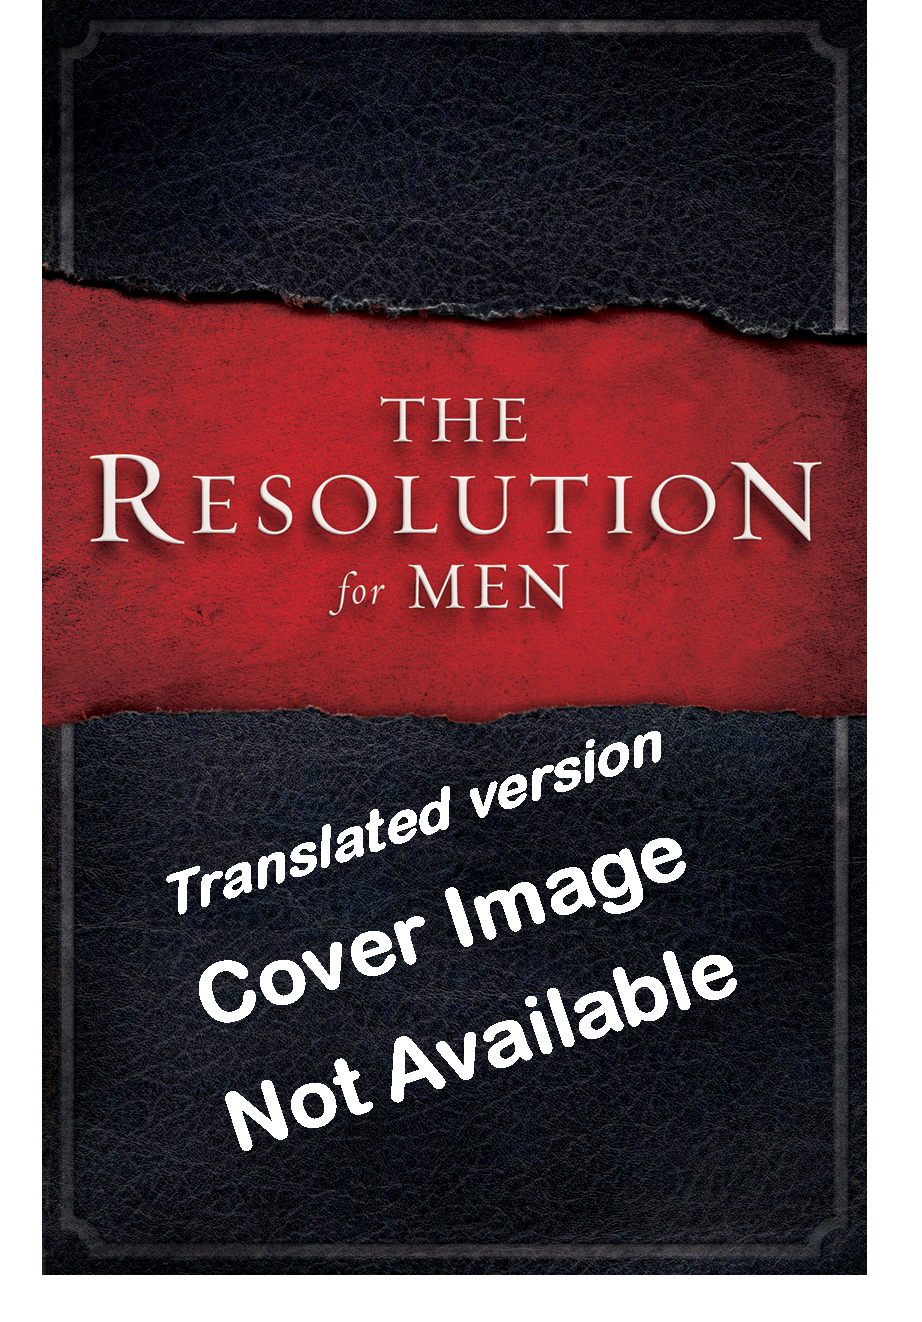 resolution-cover-image-not-available.png